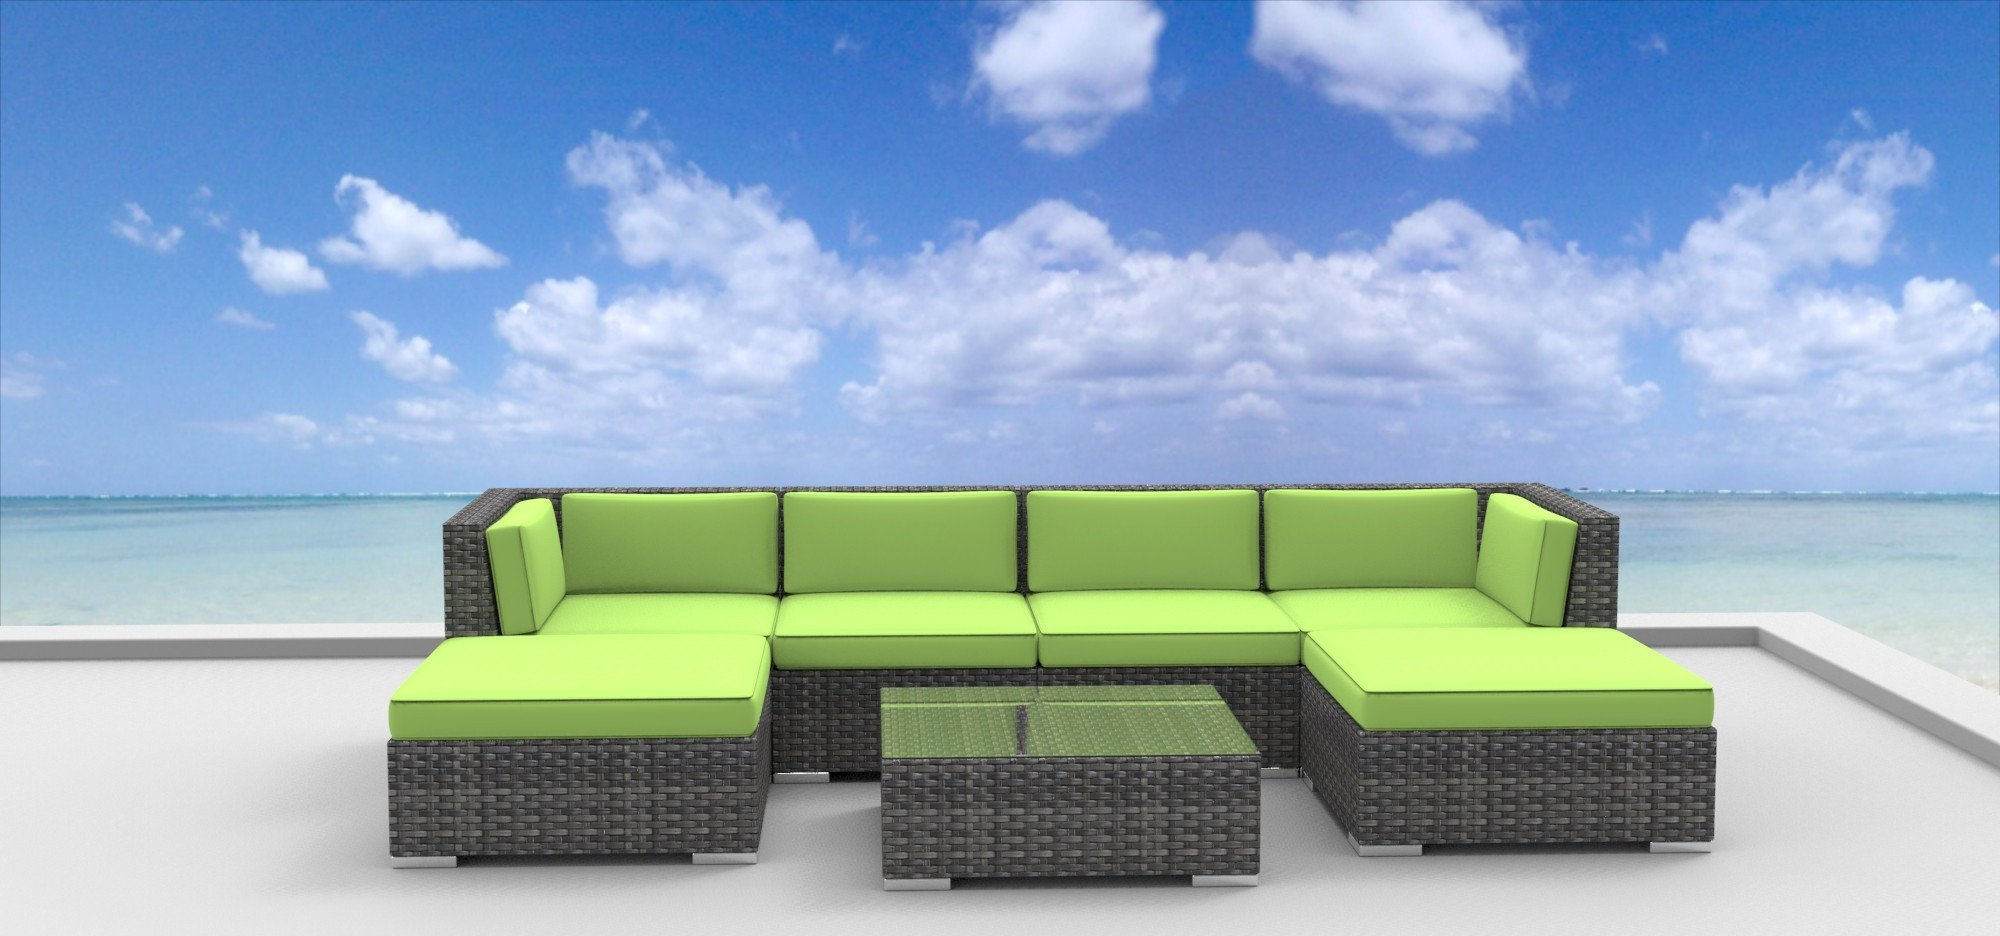 Urban Furnishing   MAUI 7pc Modern Outdoor Wicker Patio Furniture Modular  Sofa Sectional Set, Fully Assembled   Lime Green   Walmart.com